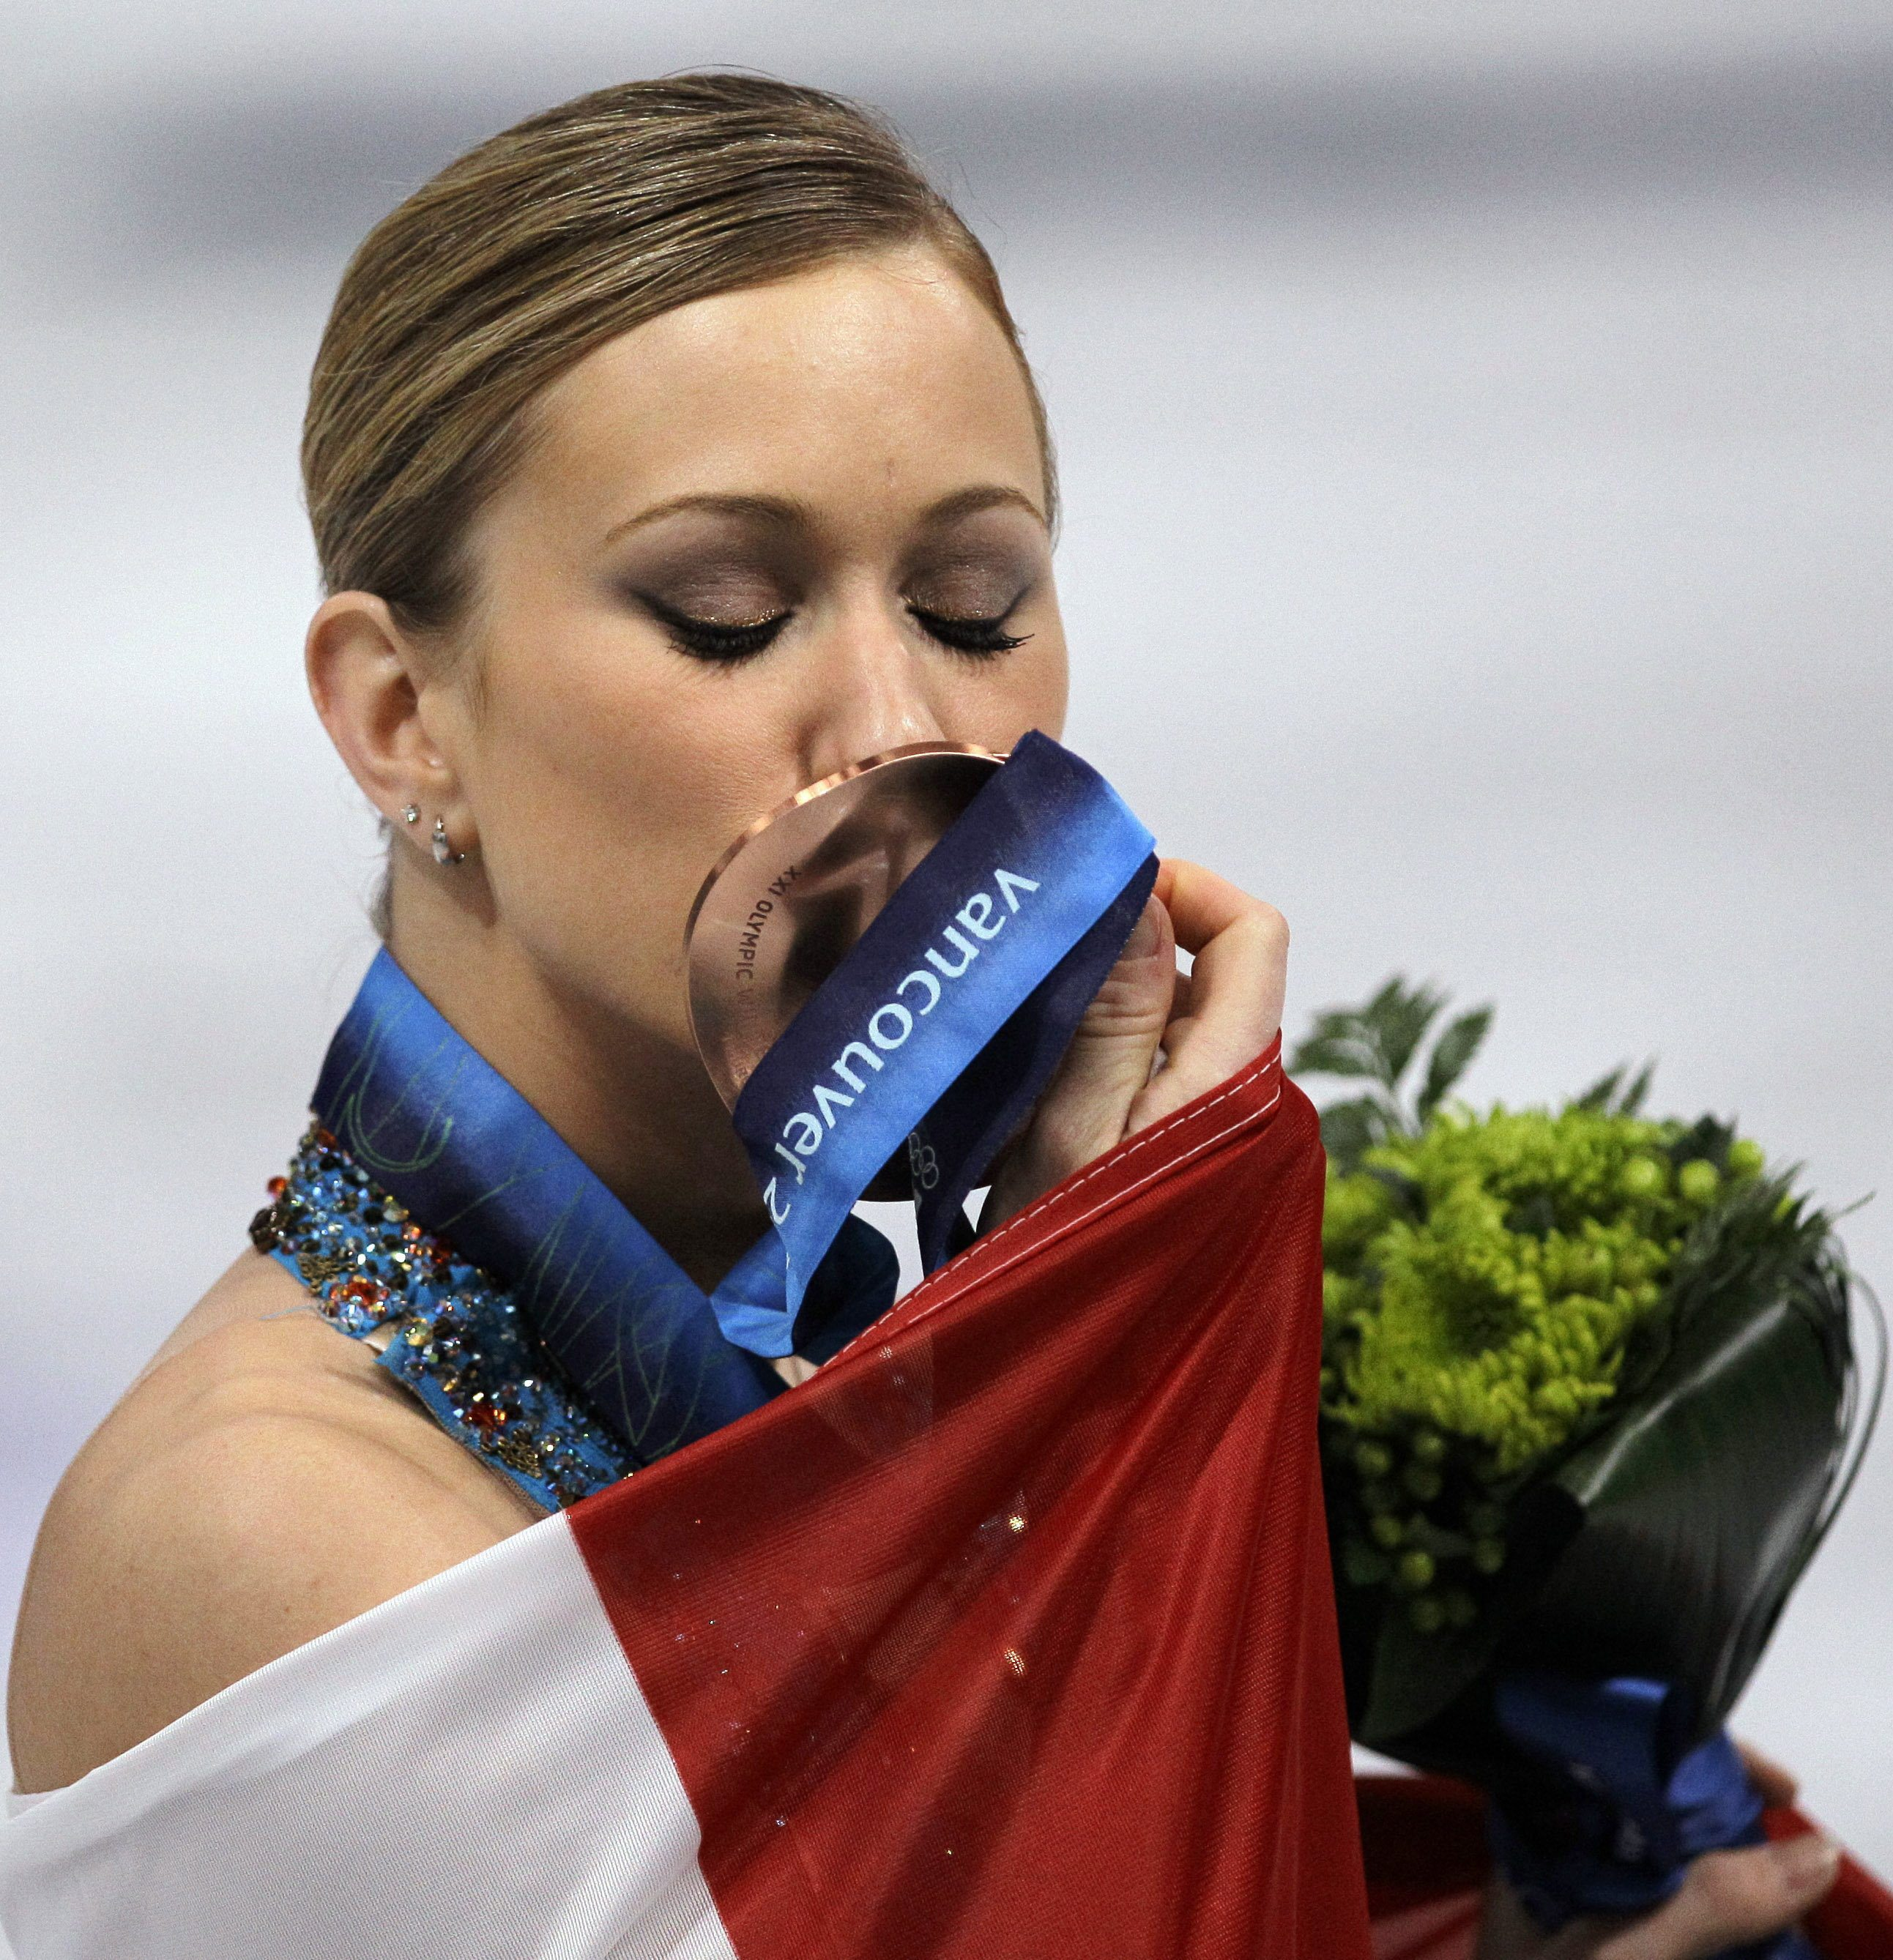 Joannie Rochette kisses her bronze medal during the victory celebration at the Vancouver 2010 Olympics